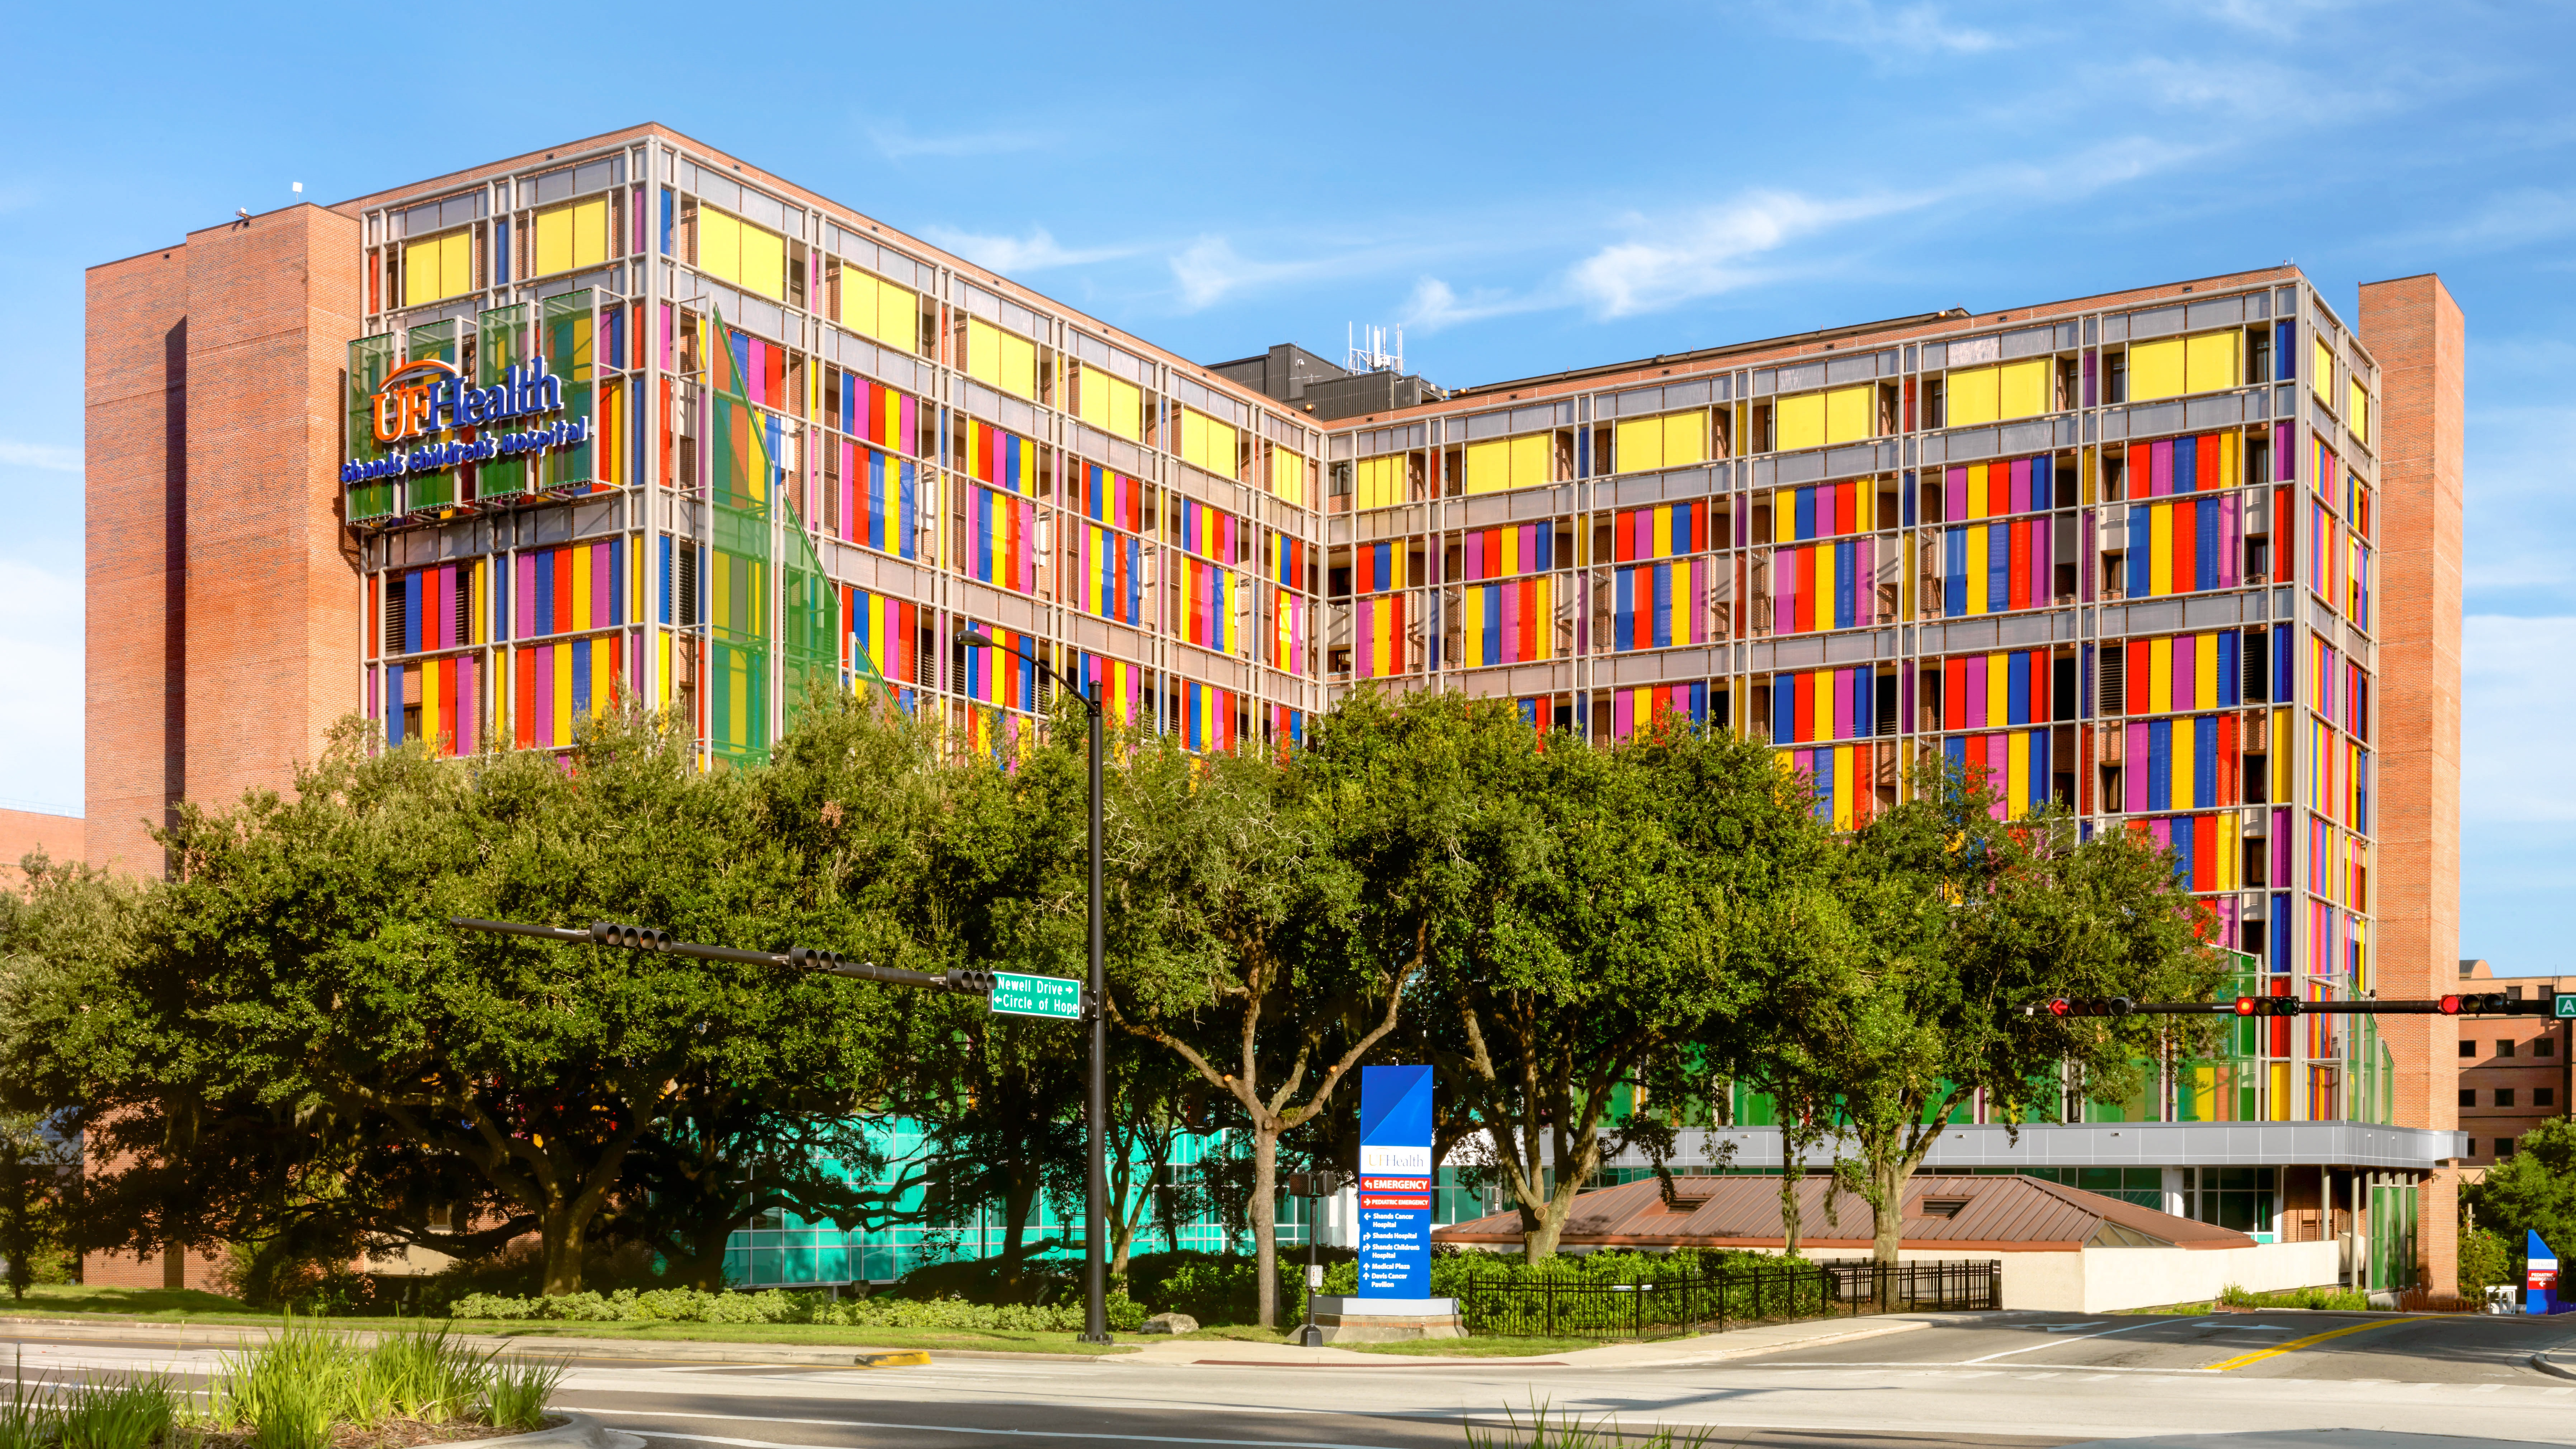 The University Of Florida Health Shands Childrens Hospital Ranks Among Nations Best Pediatric Hospitals In Six Medical Specialties According To